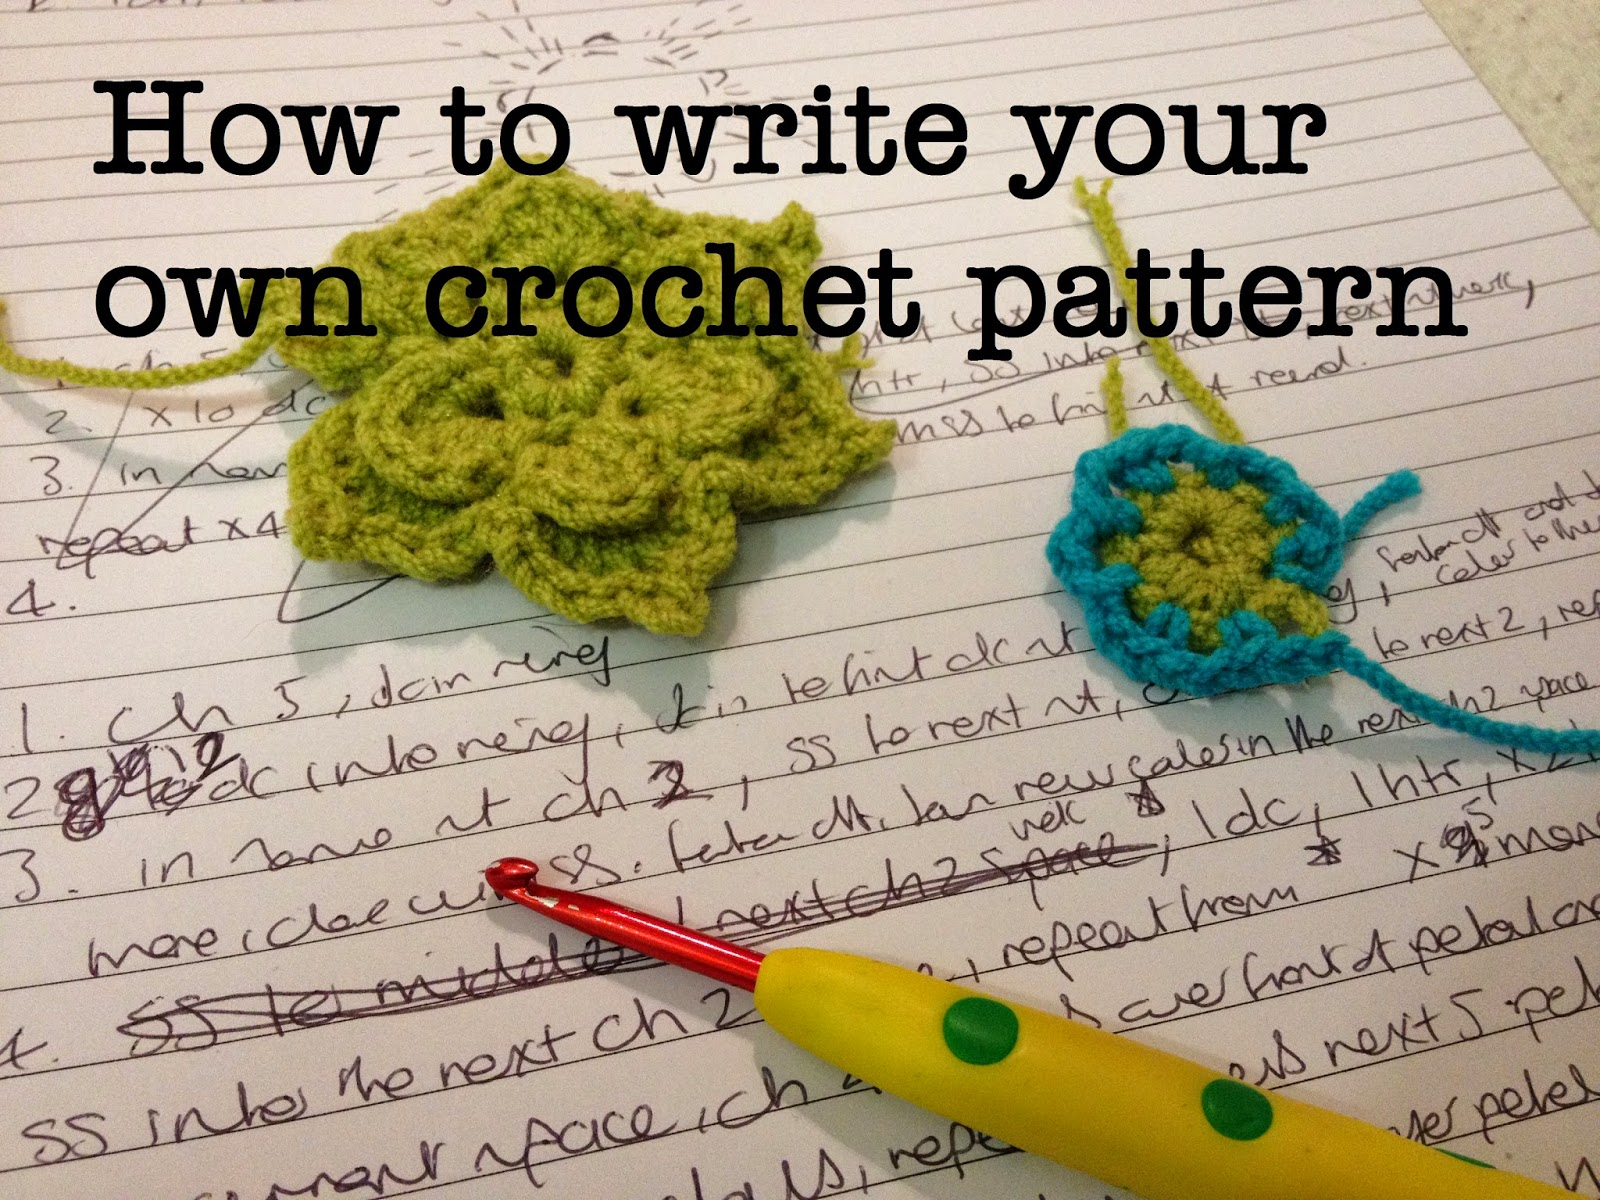 The perfect hiding place how to write your own crochet pattern how to write your own crochet pattern bankloansurffo Image collections